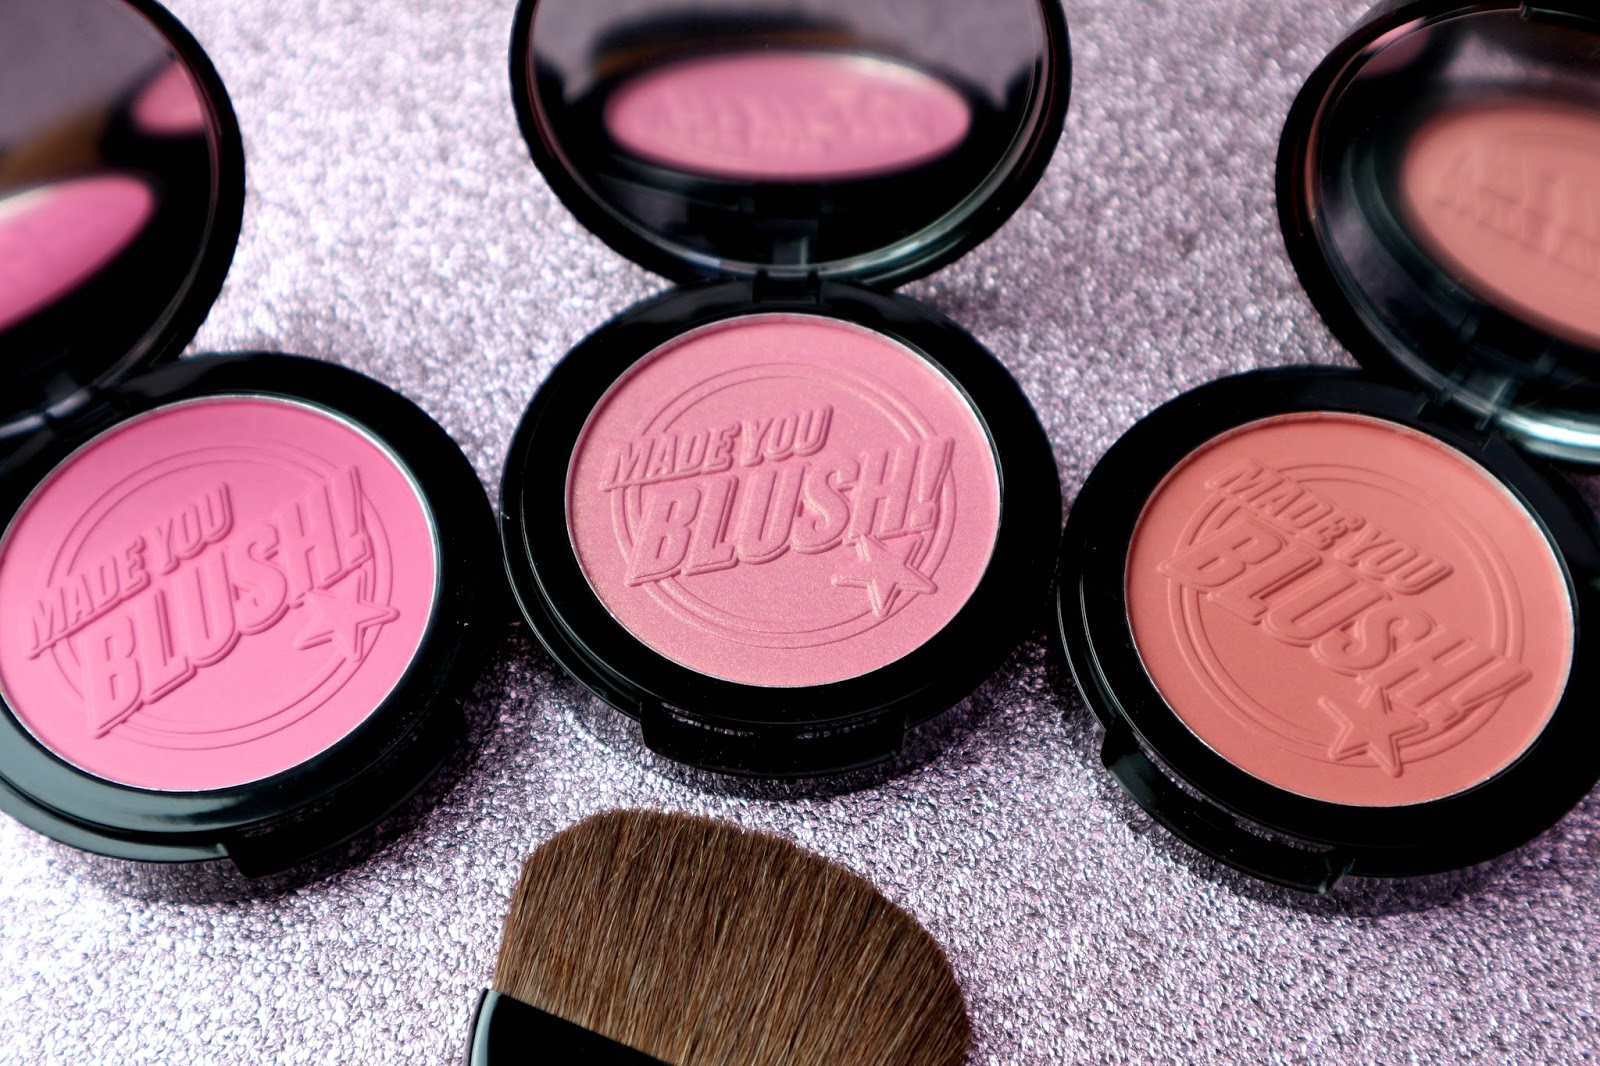 Soap & Glory Made You Blush